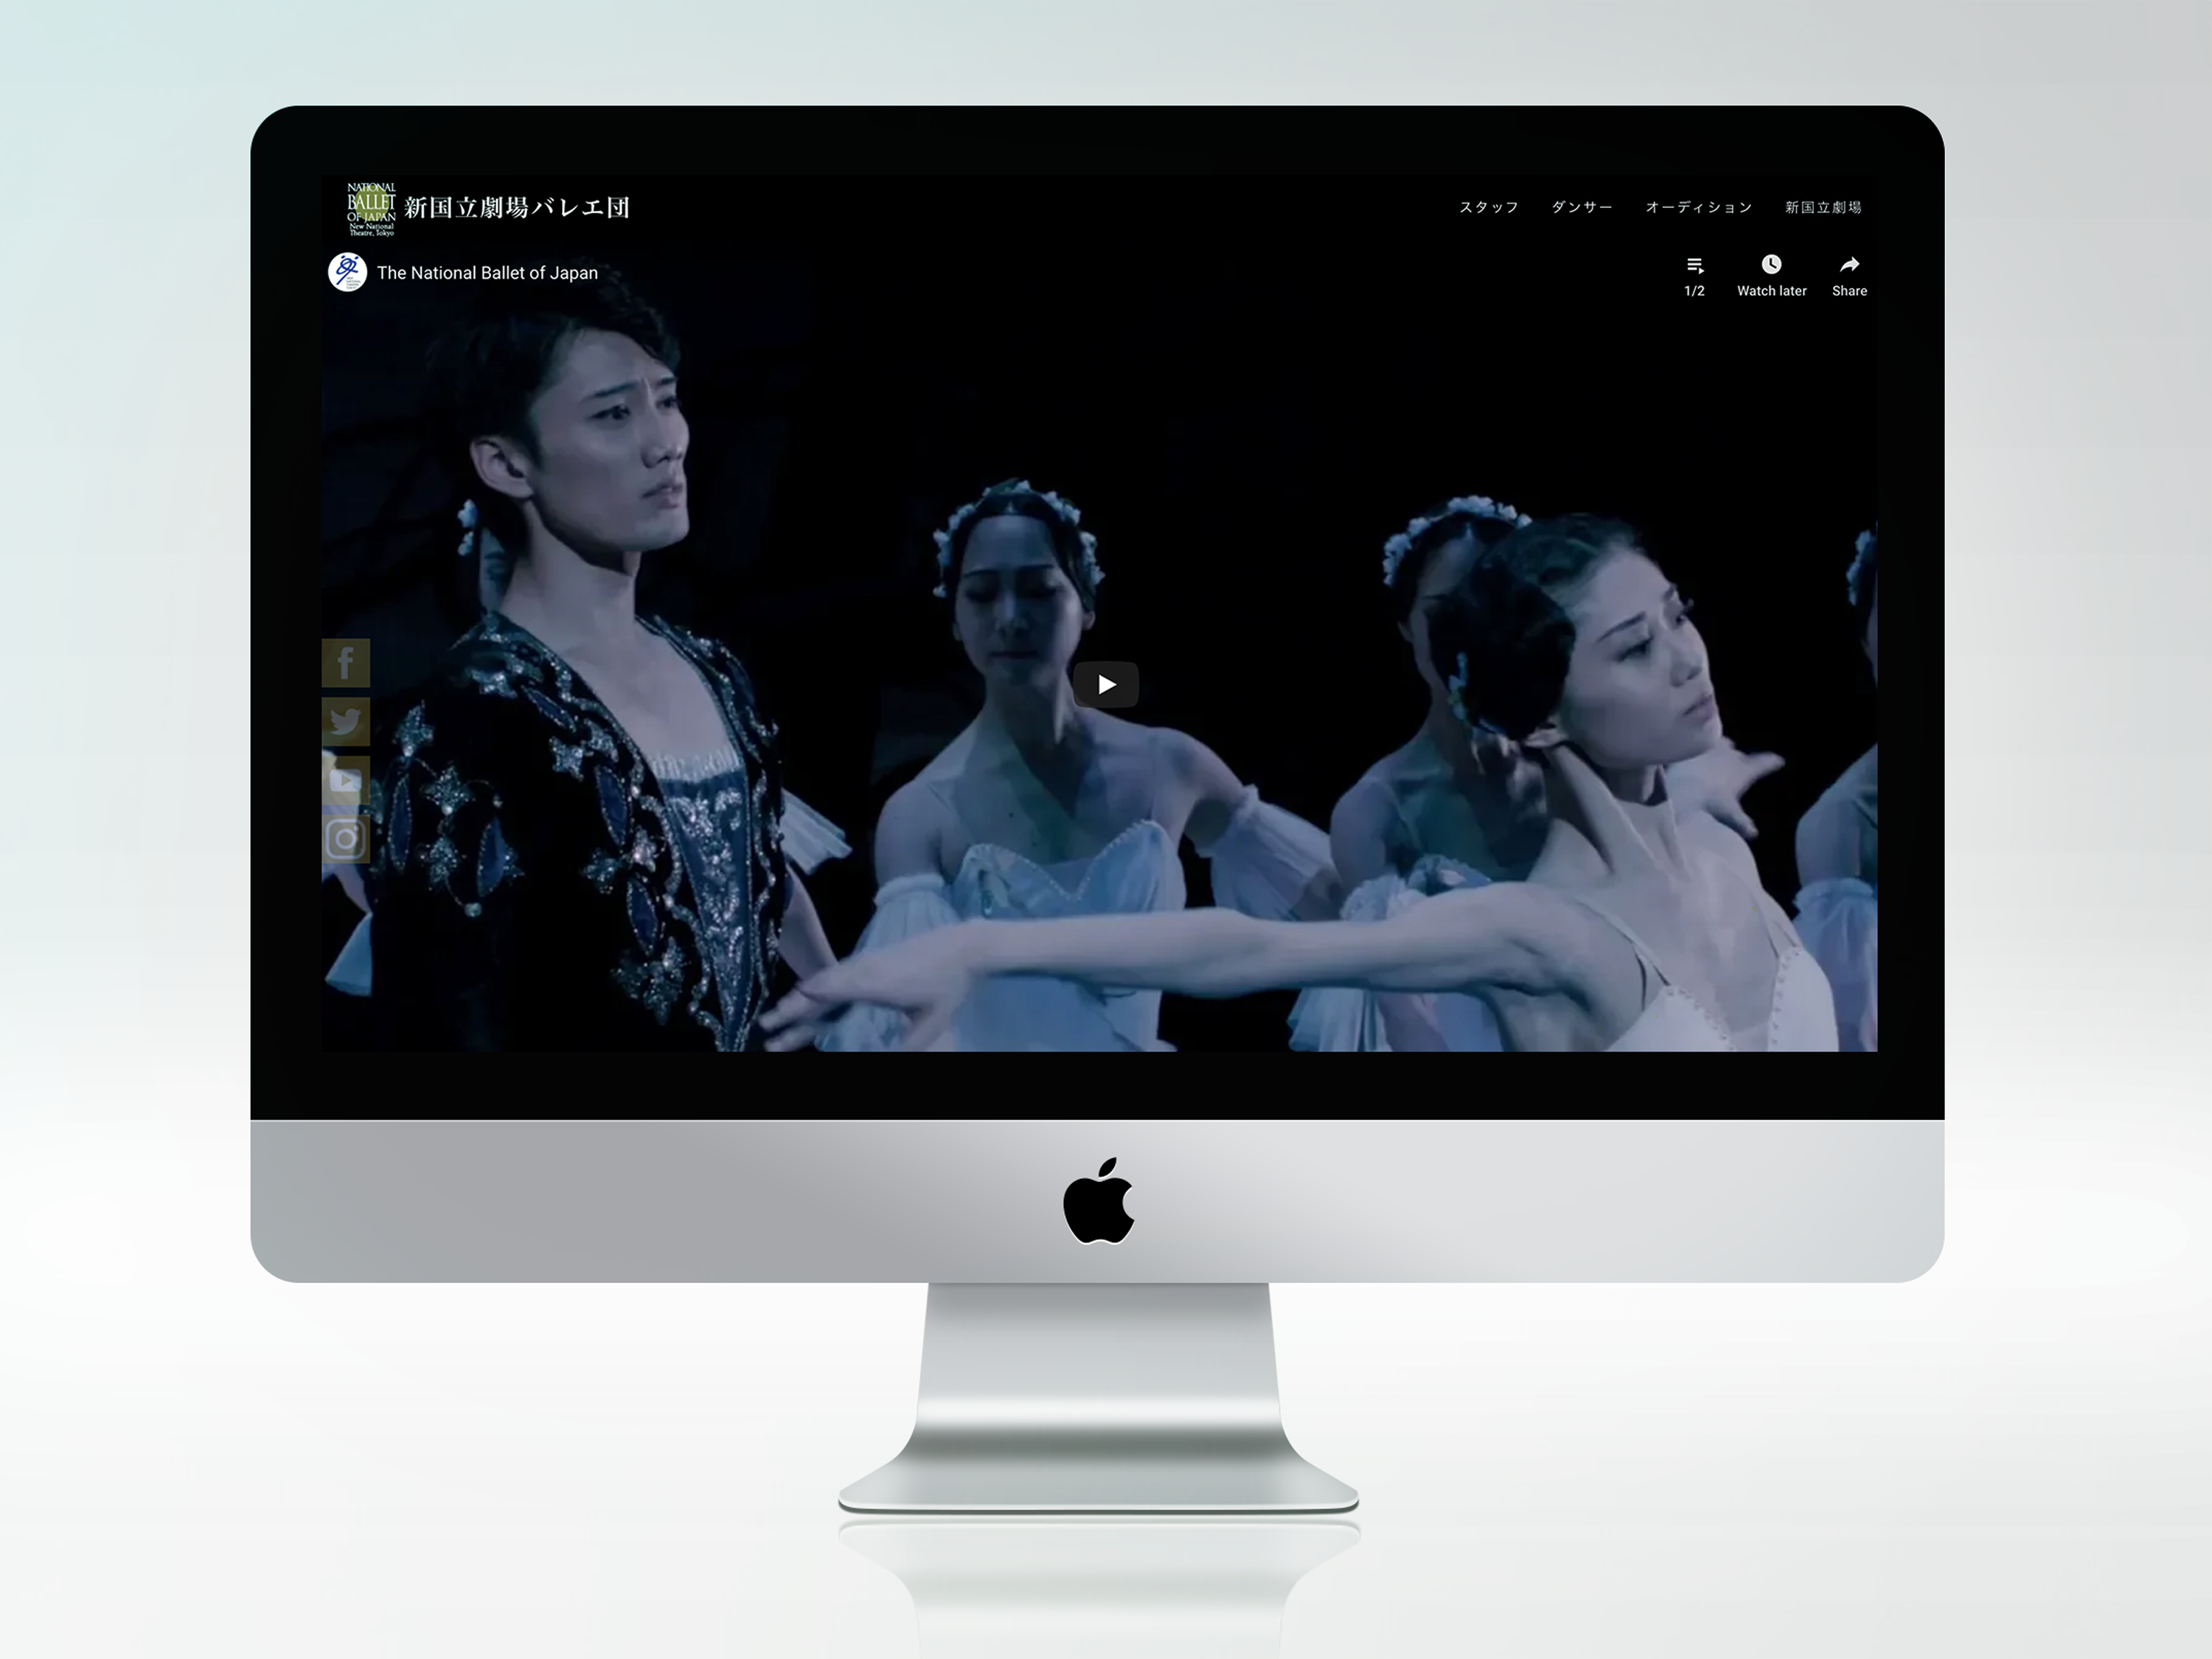 Tareboda design - The National Ballet of Japan